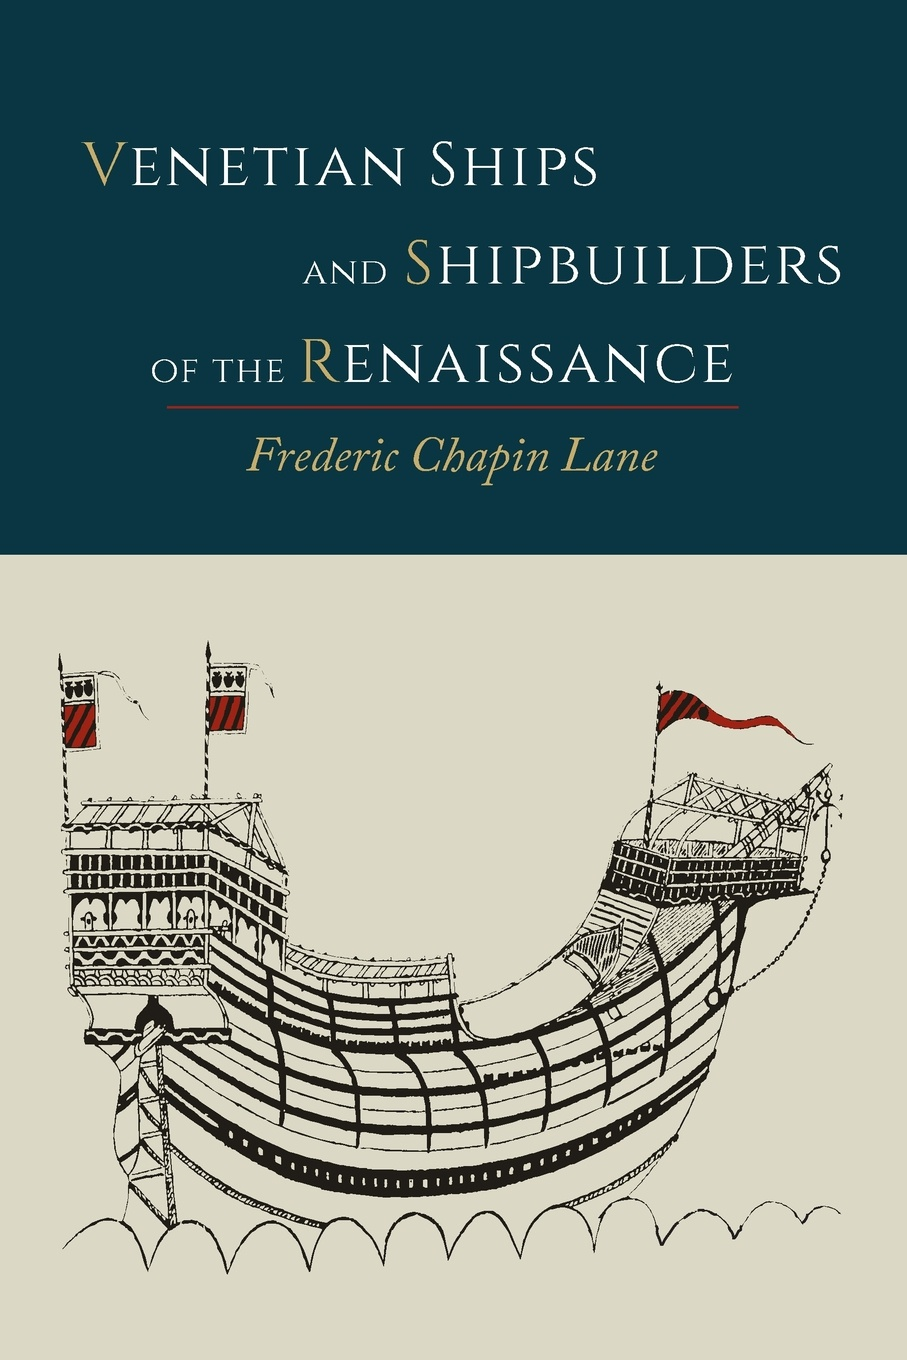 Frederic Chapin Lane Venetian Ships and Shipbuilders of the Renaissance